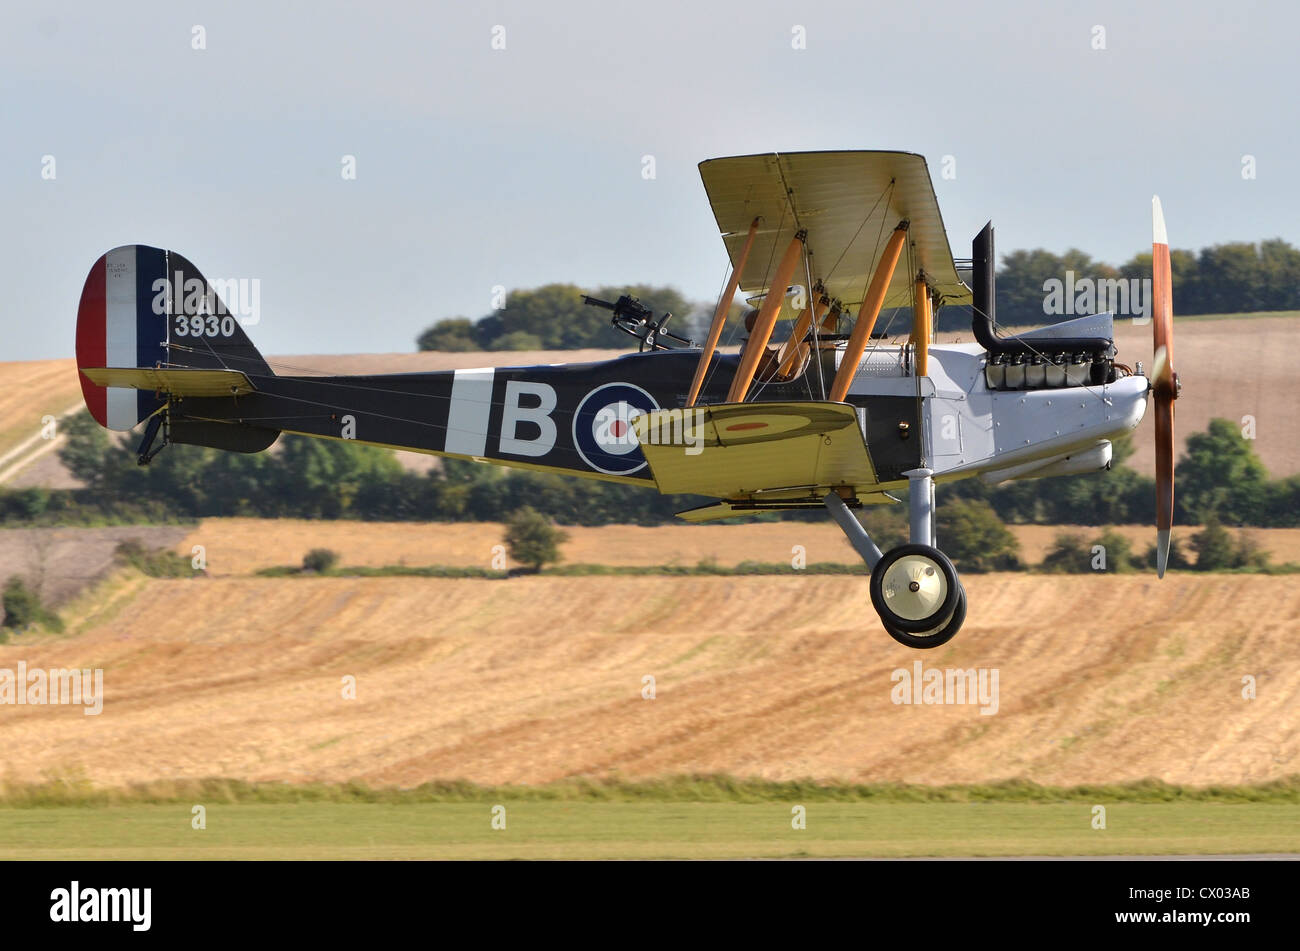 Royal Aircraft Factory R.E.8 WW1 plane in RFC markings landing at Duxford Airshow. The R.E.8 was used as an artillery - Stock Image